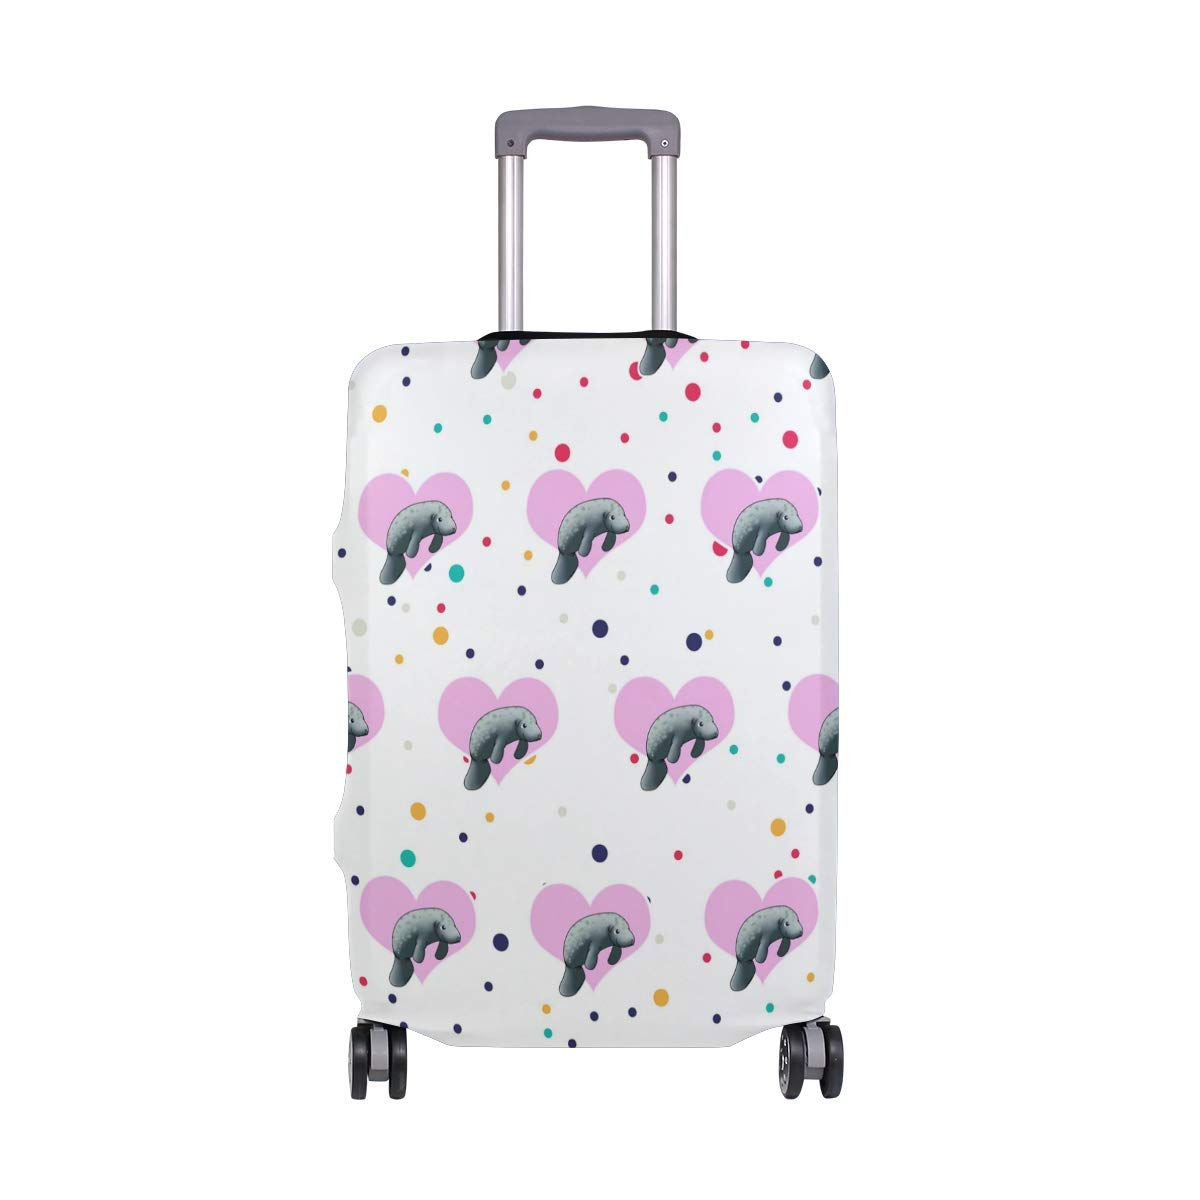 Love Manatee Travel Luggage Cover - Suitcase Protector HLive Spandex Dust Proof Covers with Zipper, Fits 18-32 inch